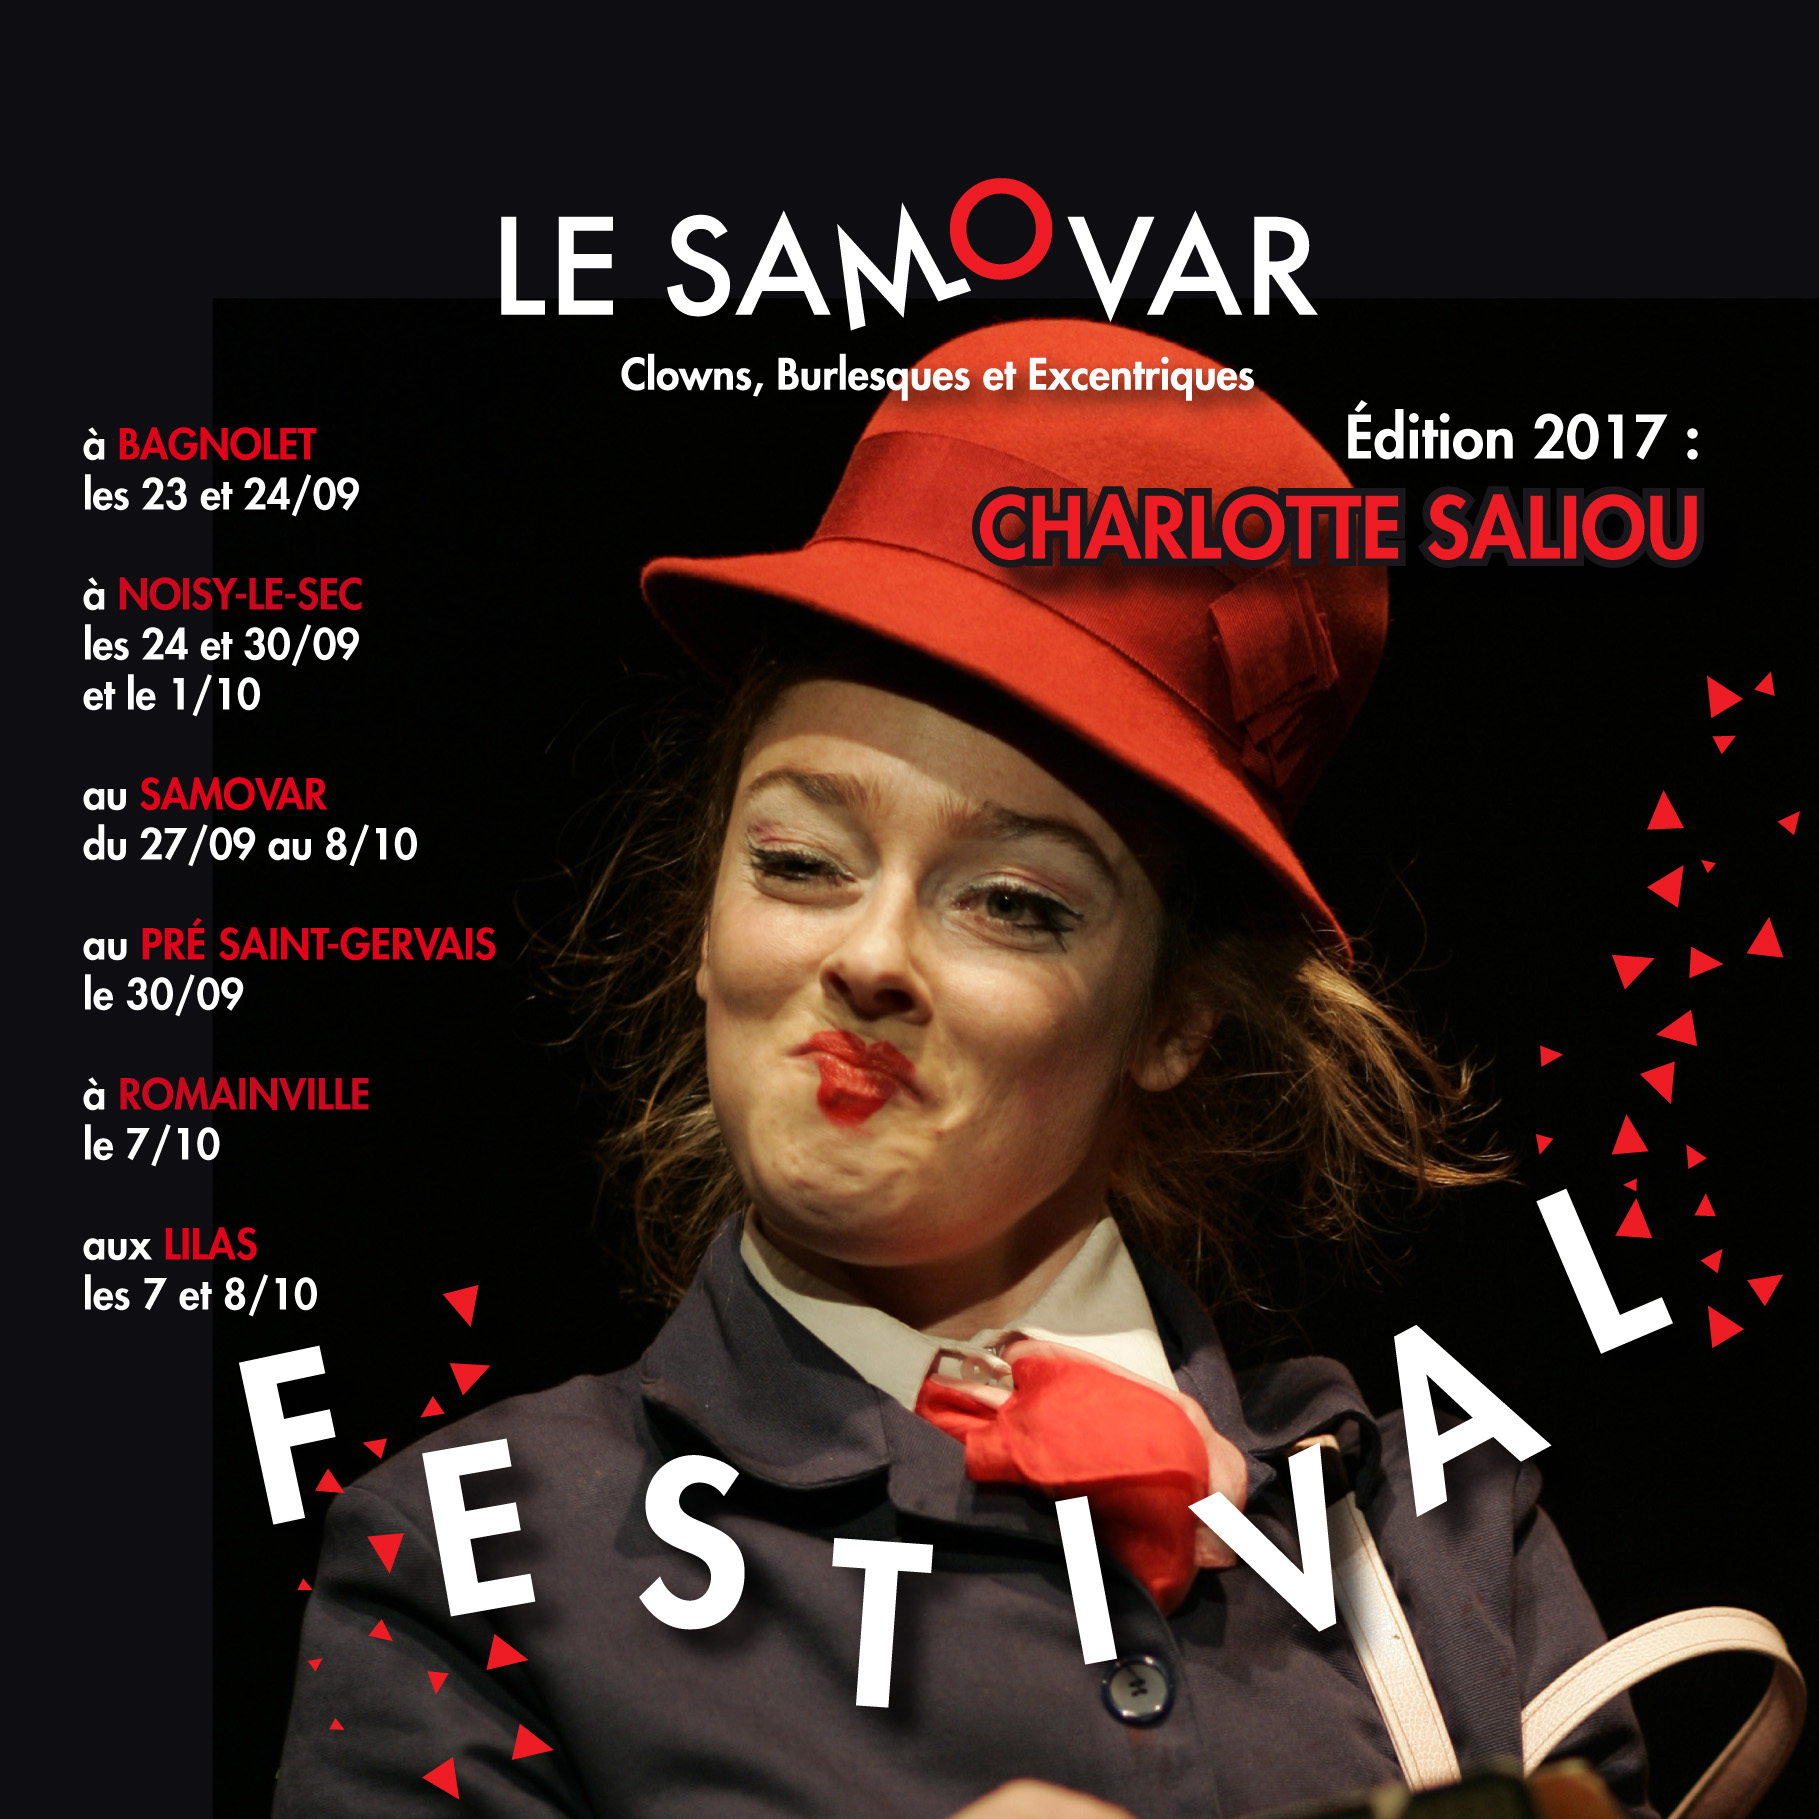 Festival des Clowns, Burlesques and Eccentric